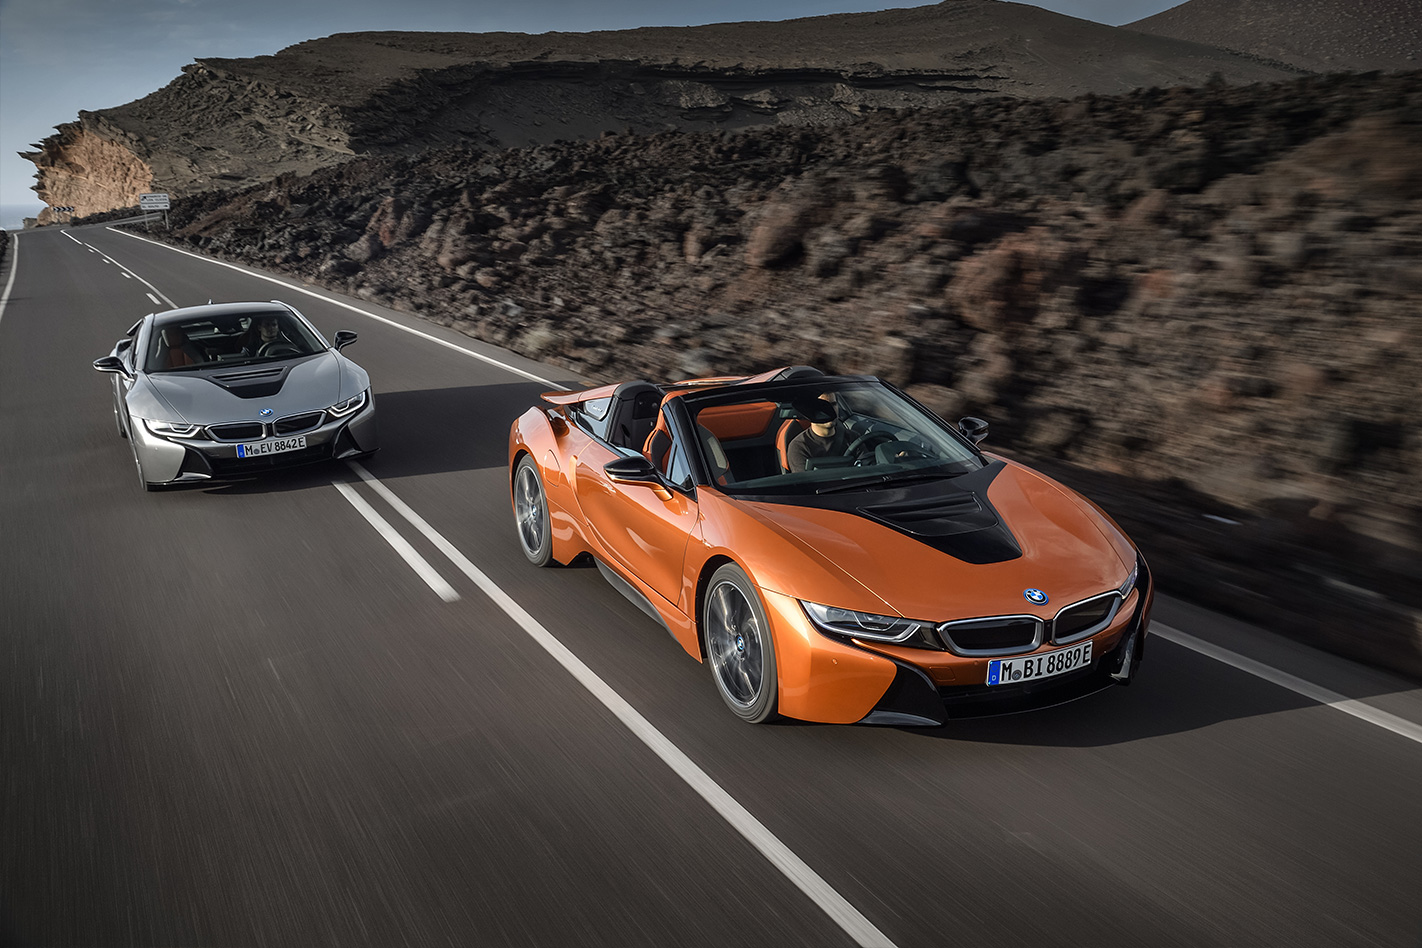 2017 La Motor Show 2018 Bmw I8 Roadster Revealed Coupe Facelifted